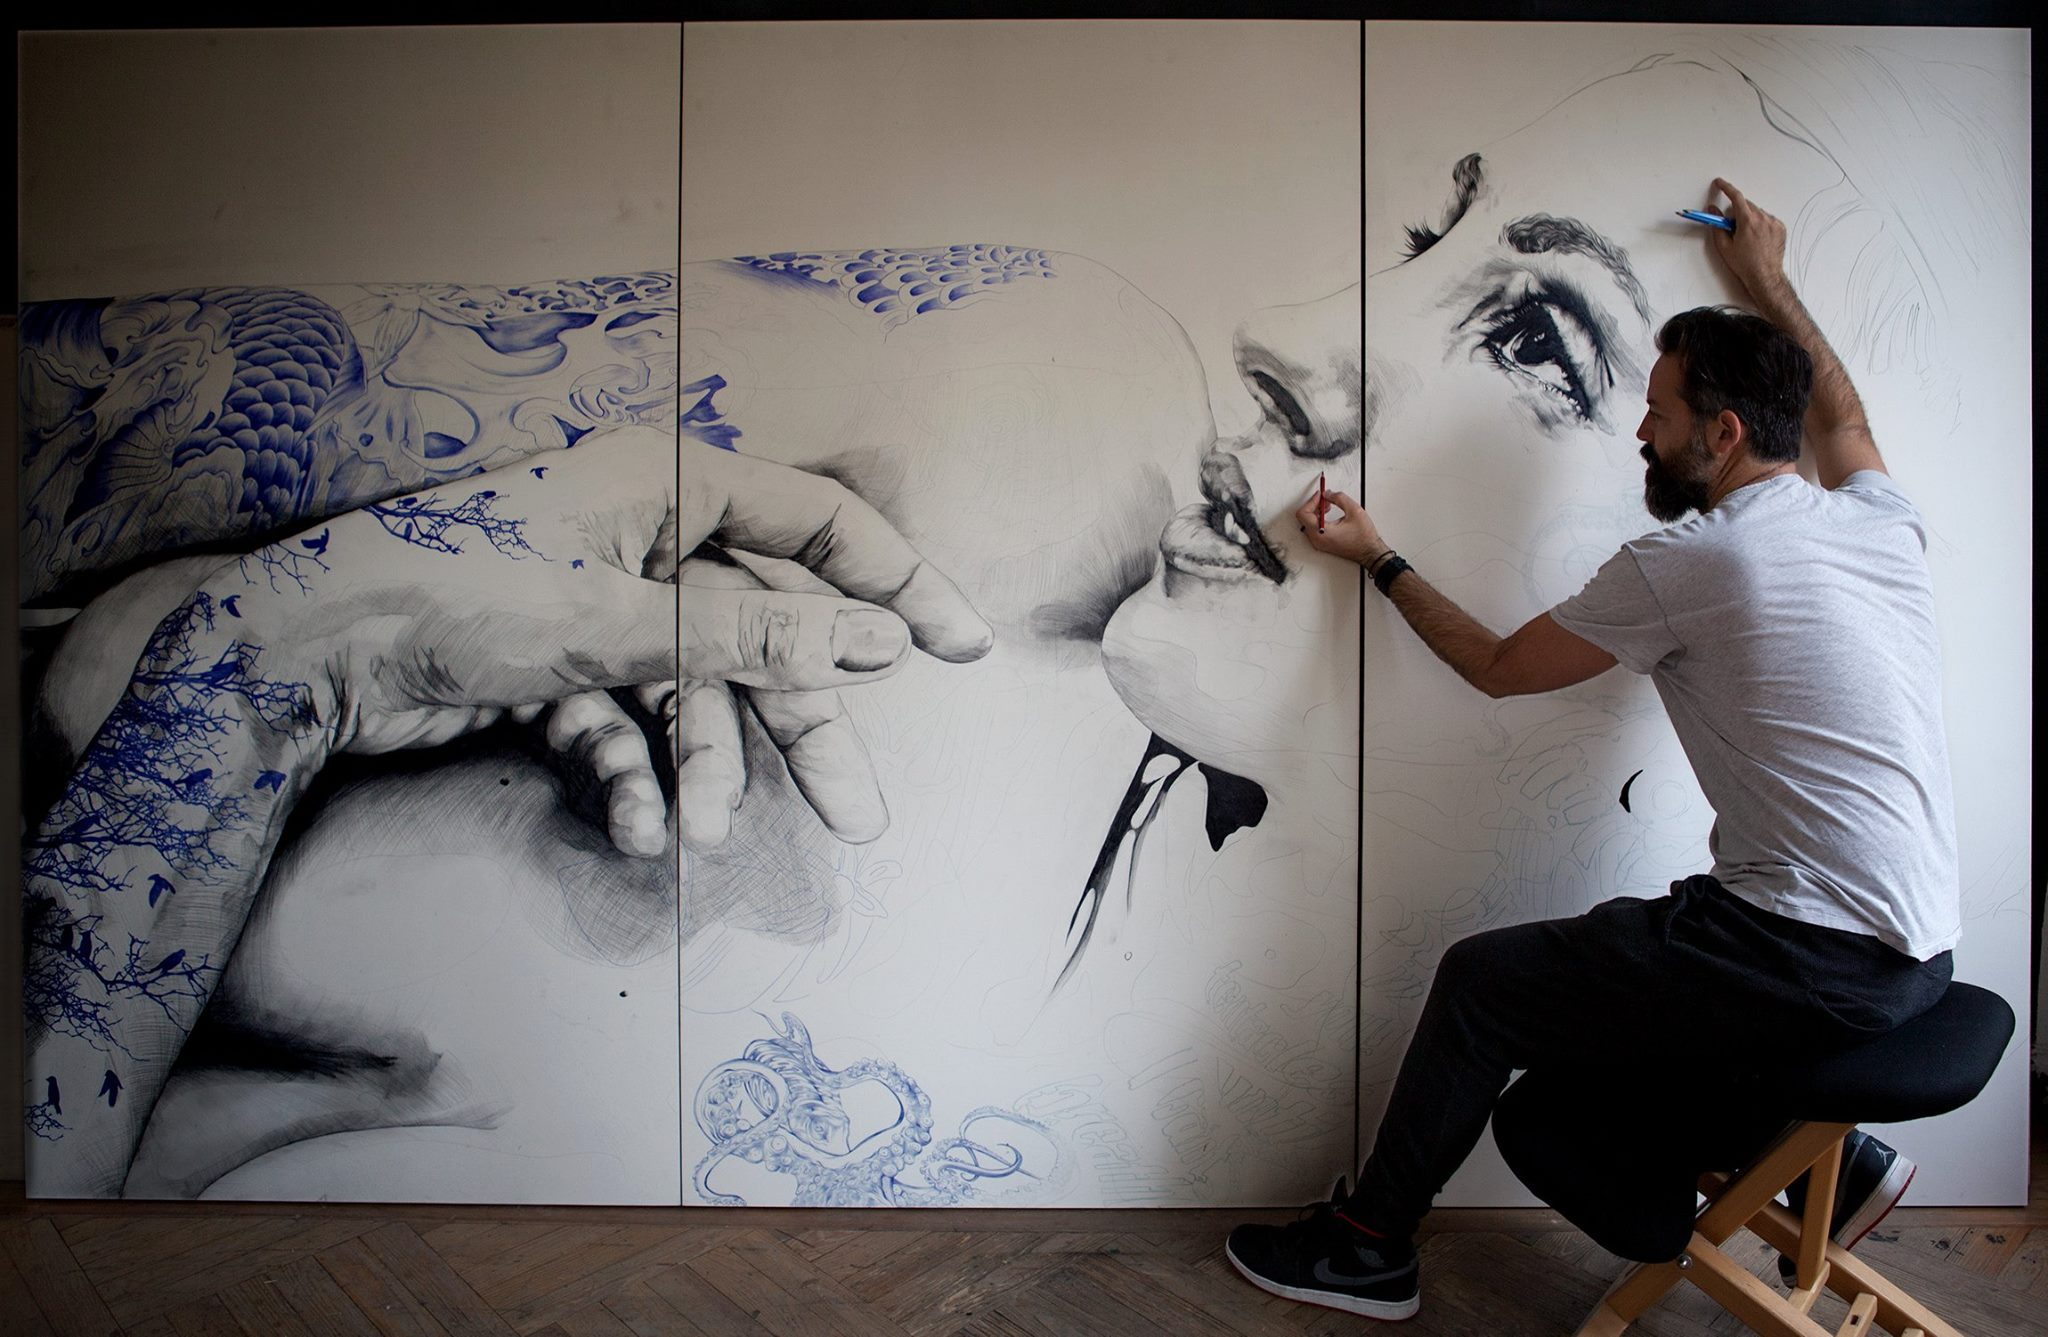 Gabriel Moreno, working on a new piece